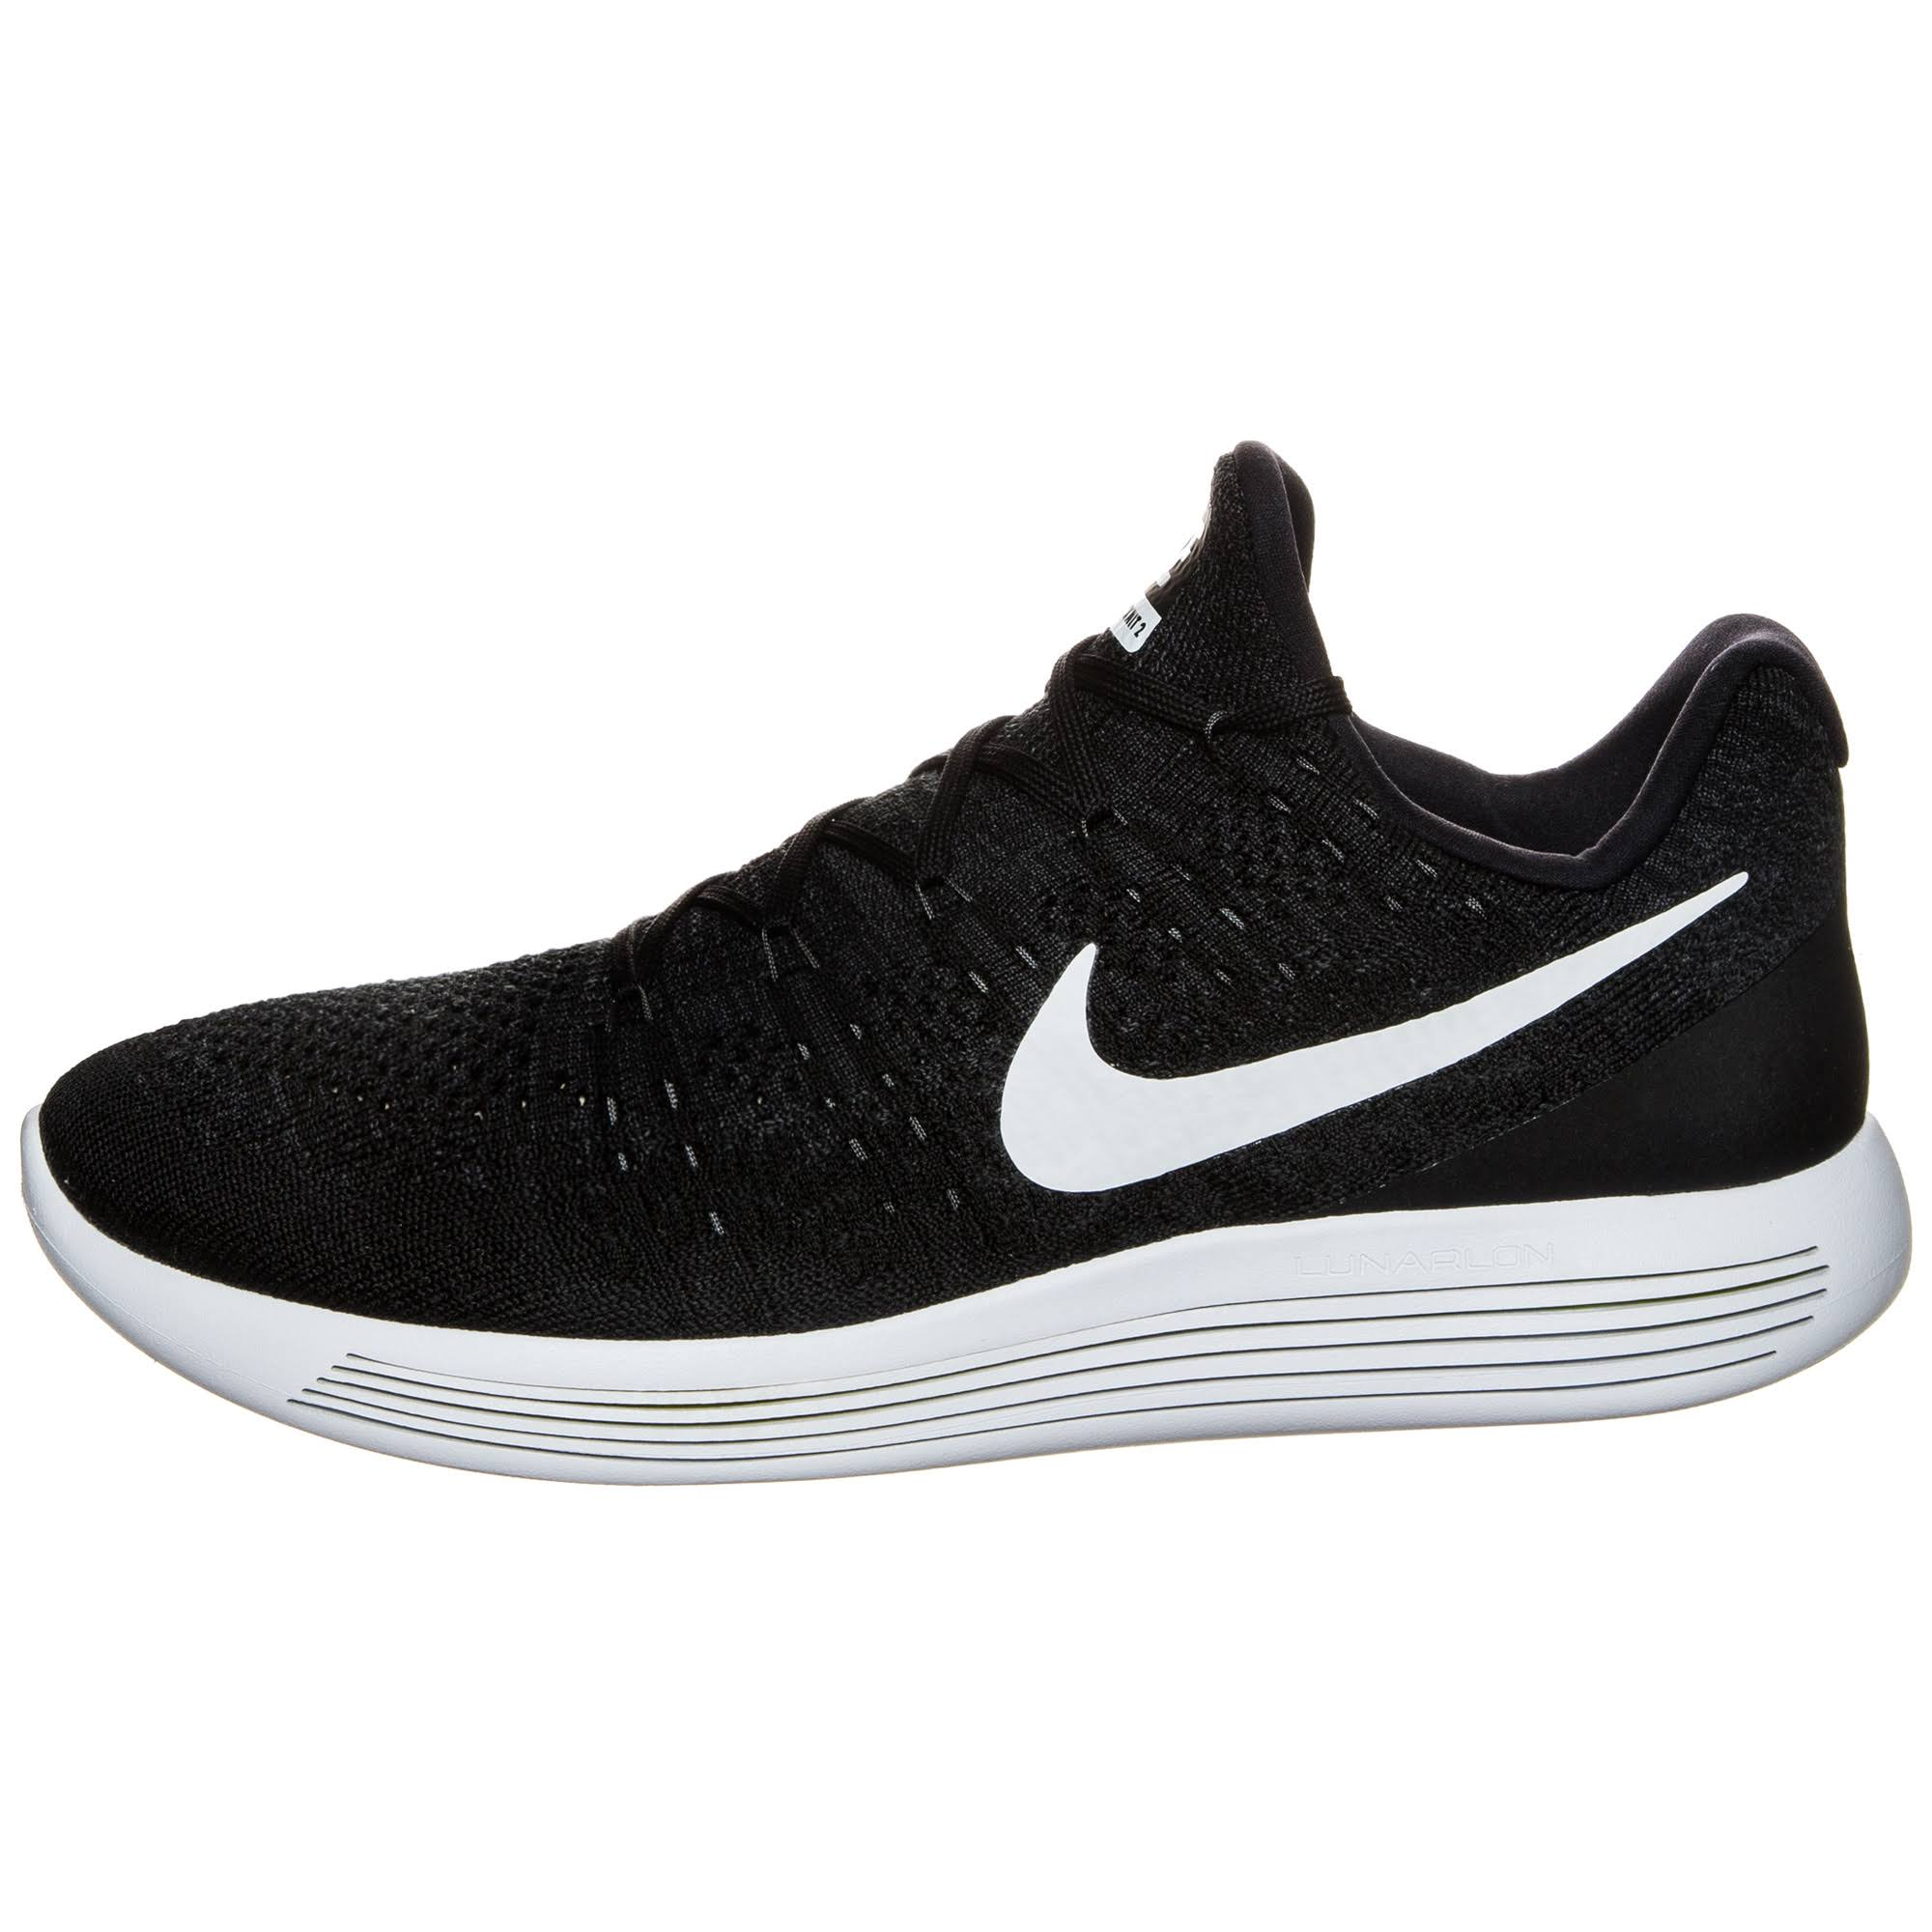 Sneakers Nike Mens 2 white Trainers Lunarepic anthracite Low Flyknit 863779 Running Black A1O7q